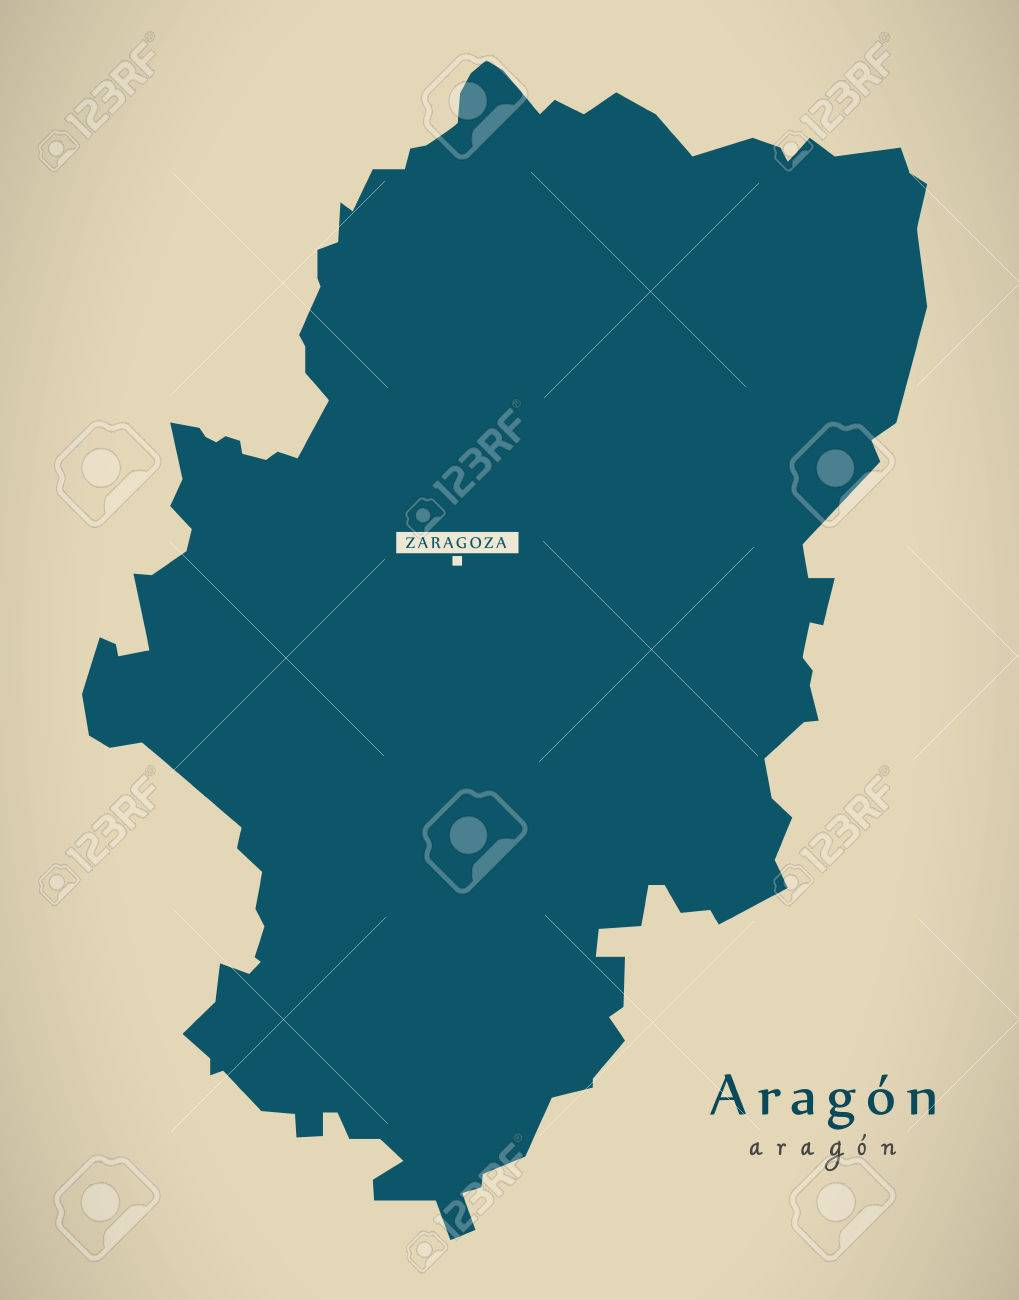 Modern Map Aragon Spain Es Illustration Stock Photo Picture And